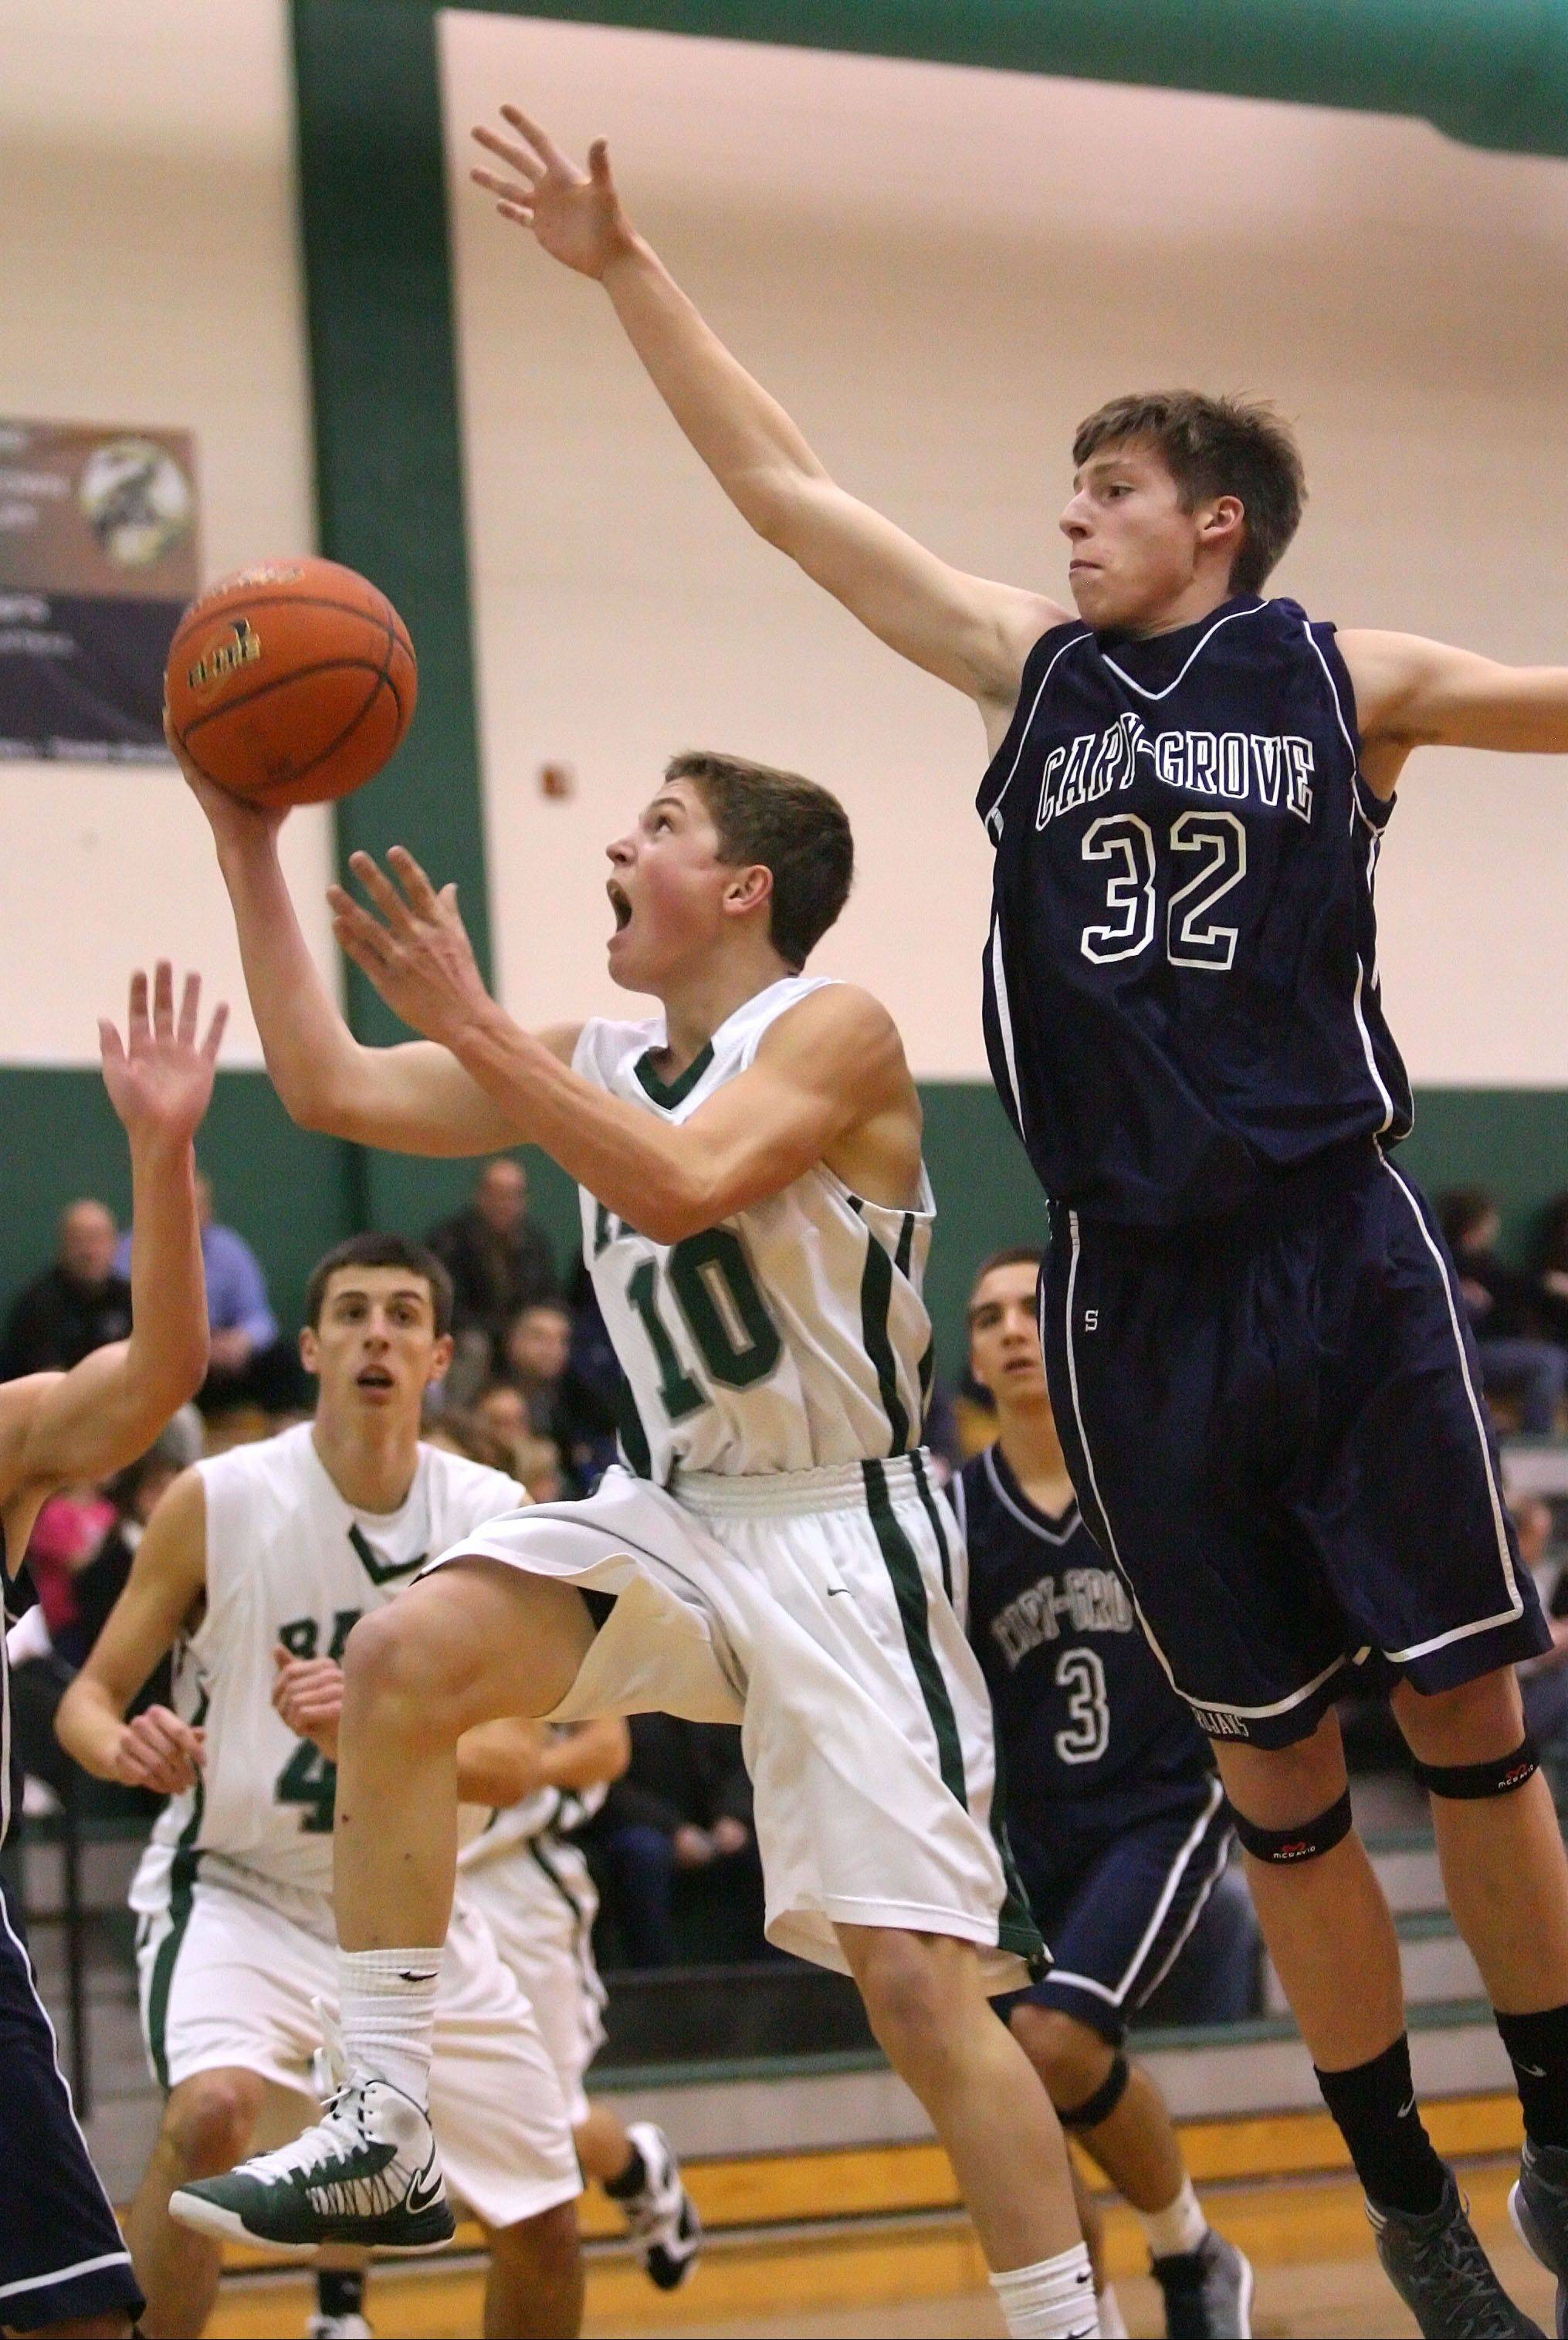 Grayslake Central's Joey Mudd, left, drives on Cary-Grove's Dean Lee on Tuesday night at Grayslake Central.